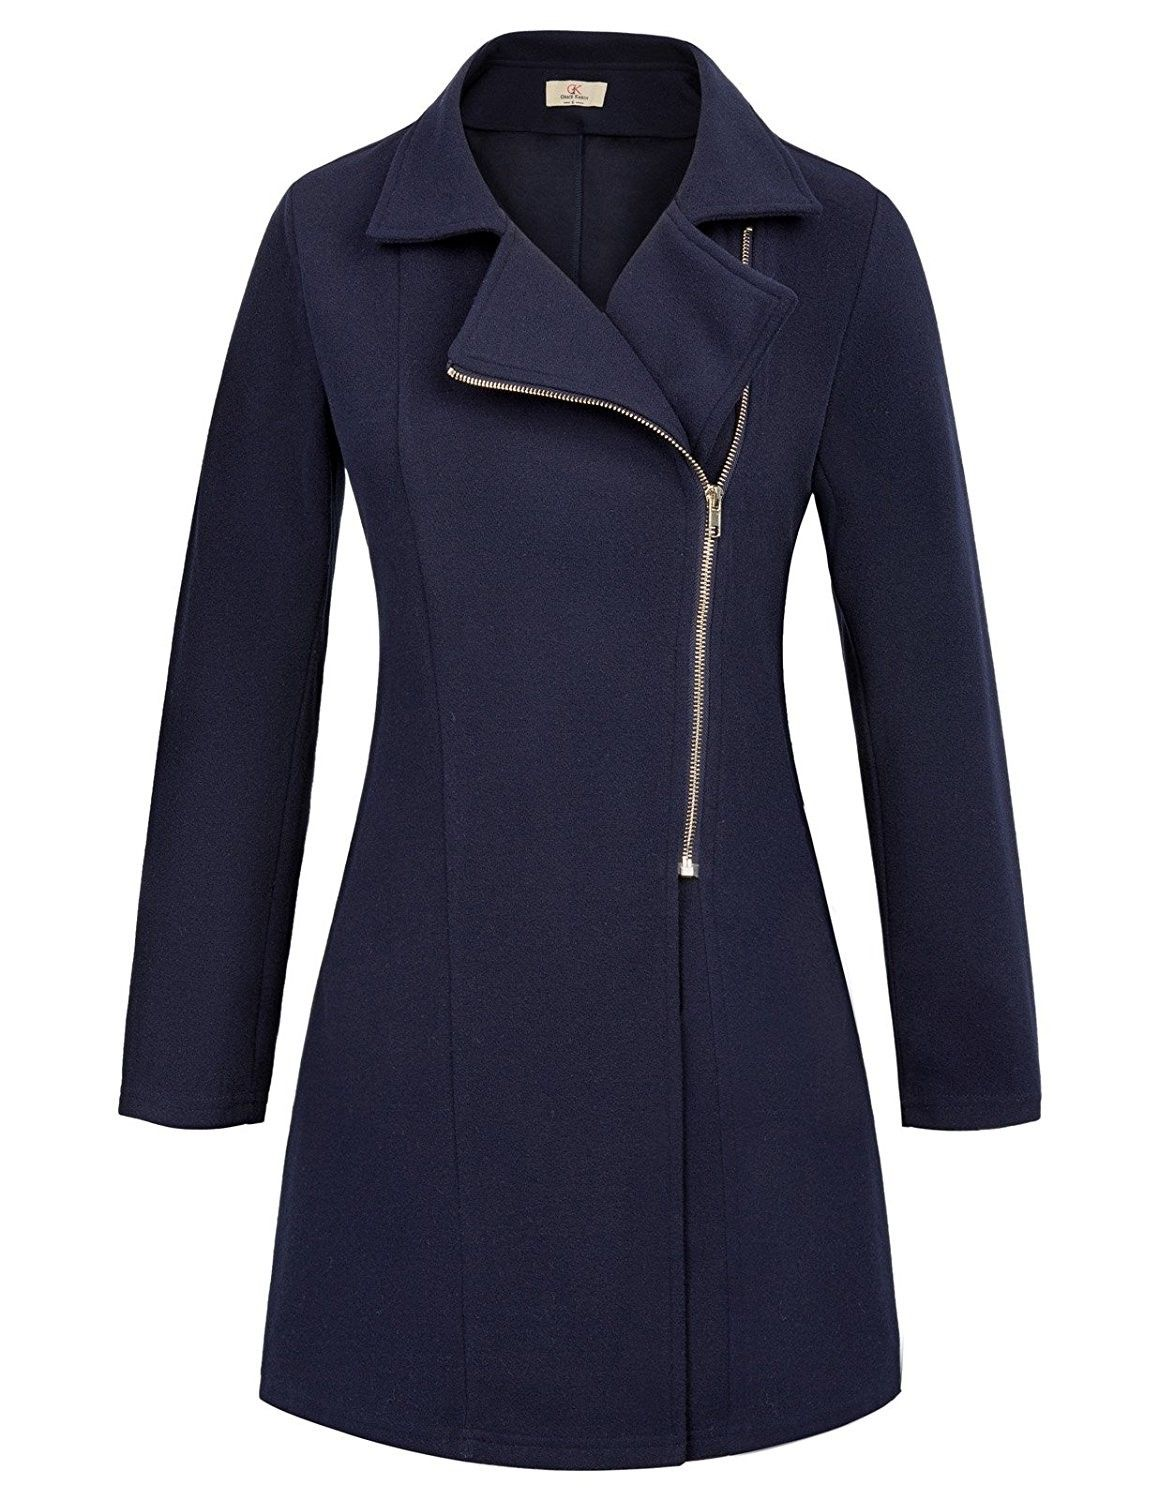 ce15547d26f Women Long Sleeve Casual Zipper Jacket Coat CLAF0243 - Navy Blue ...